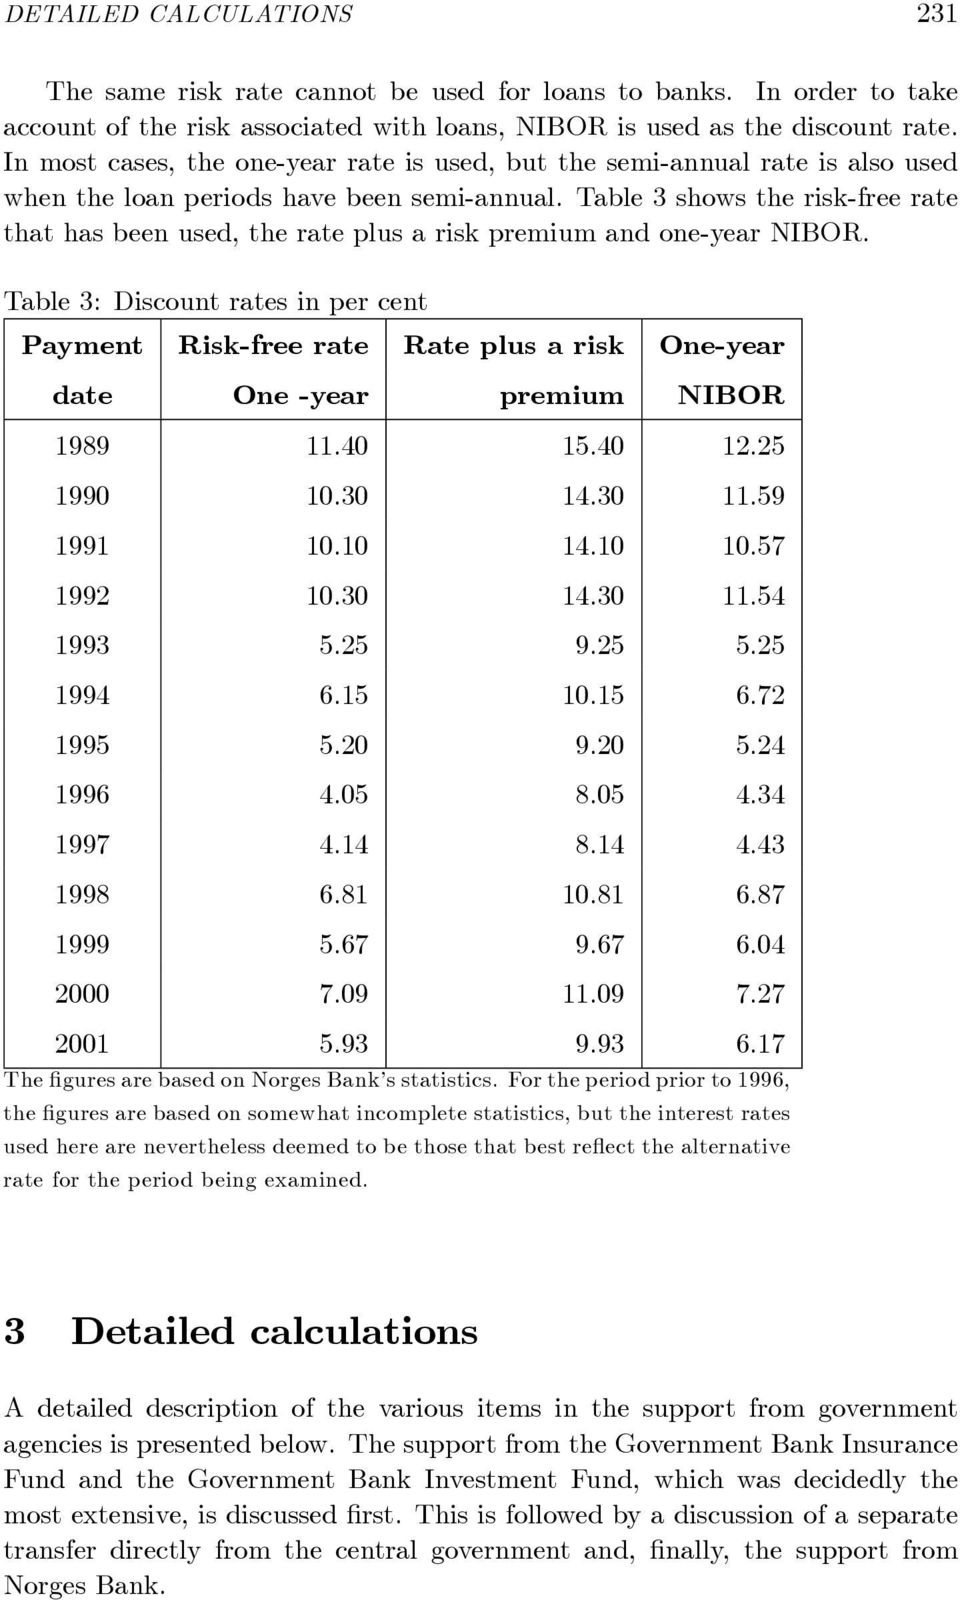 Table 3 shows the risk-free rate that has been used, the rate plus a risk premium and one-year NIBOR.